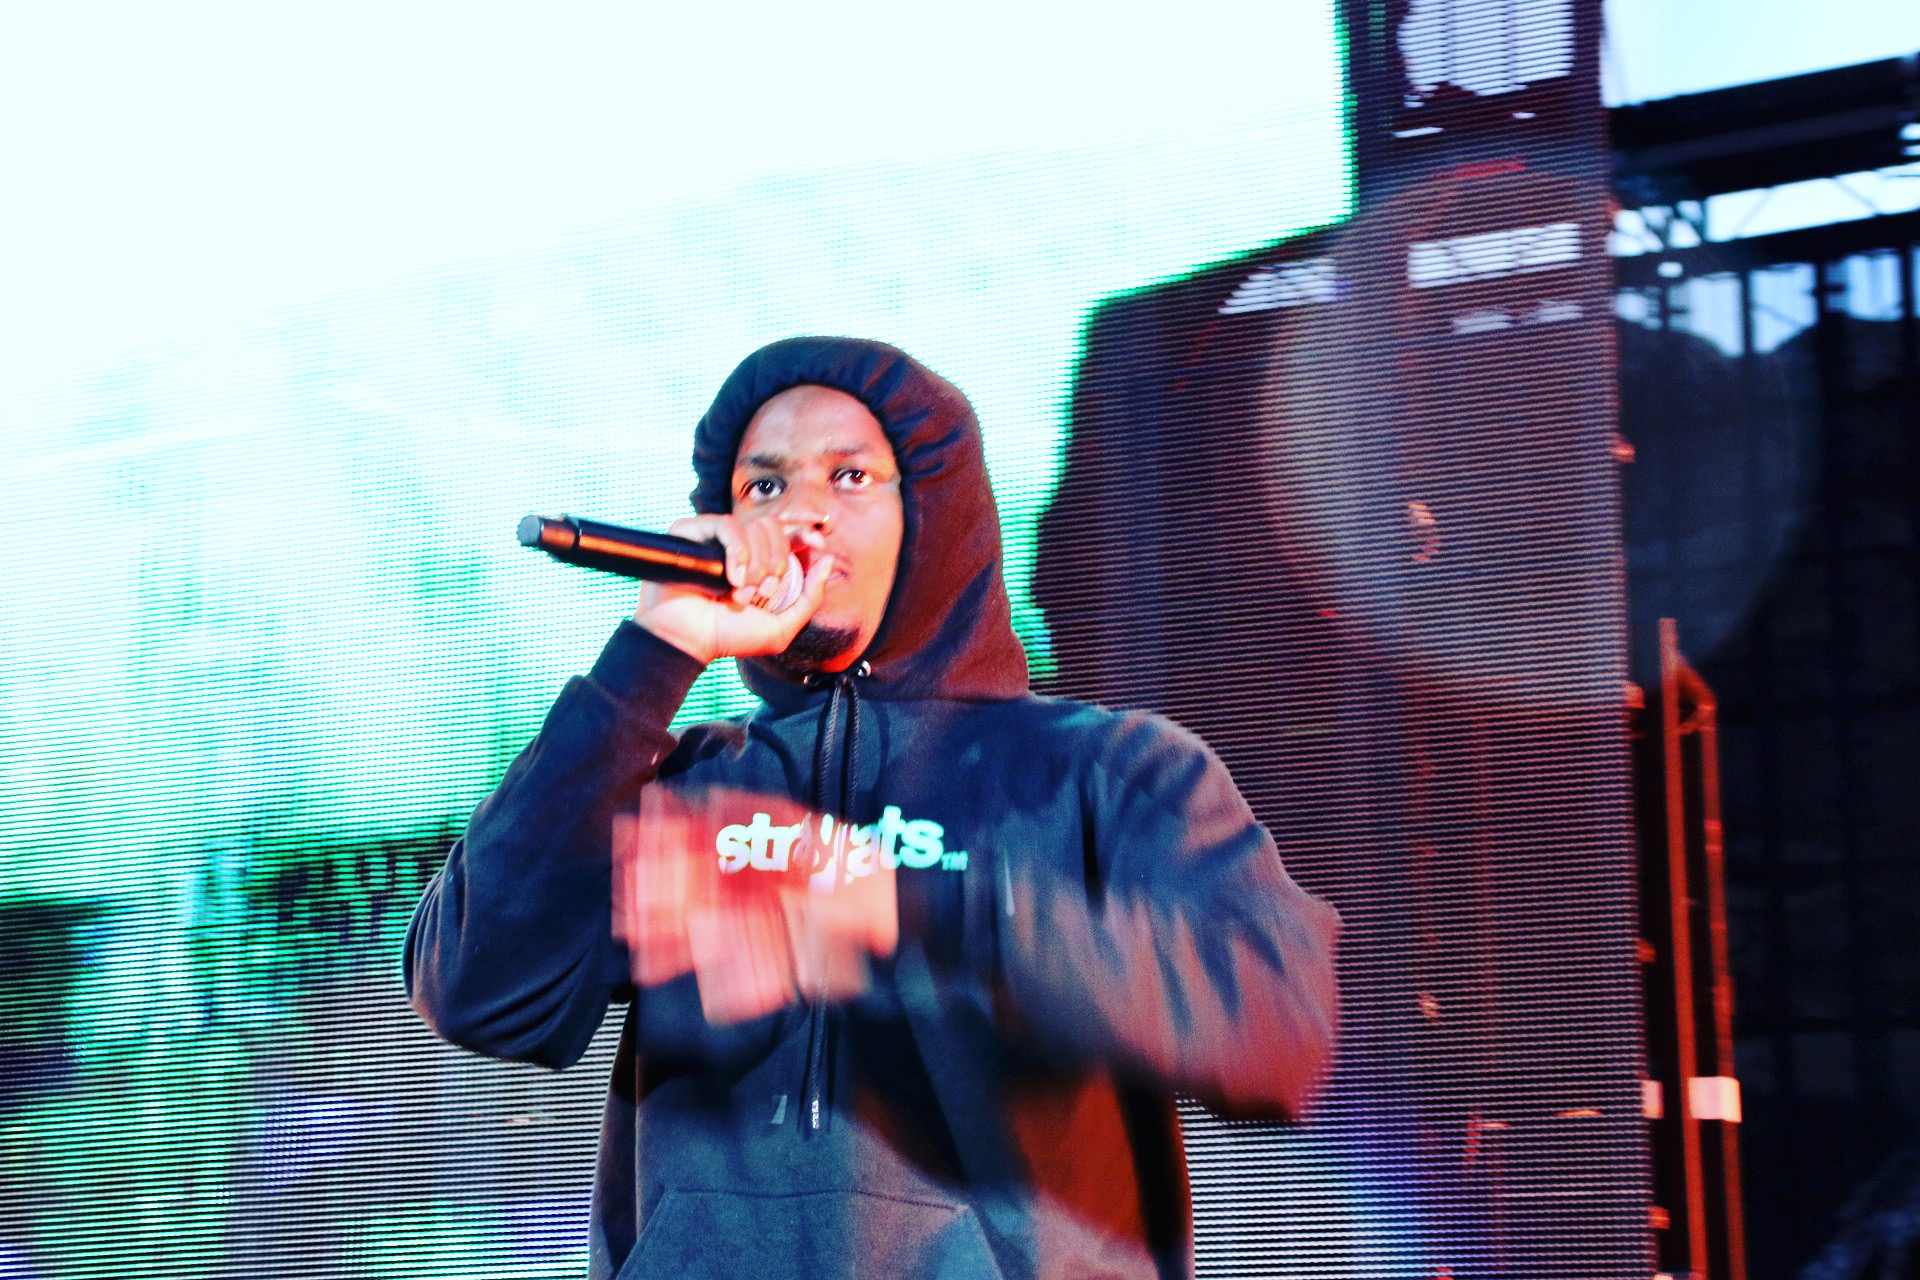 File:Denzel Curry Red Rocks 06.05.19 (48012894102).jpg - Wikimedia Commons